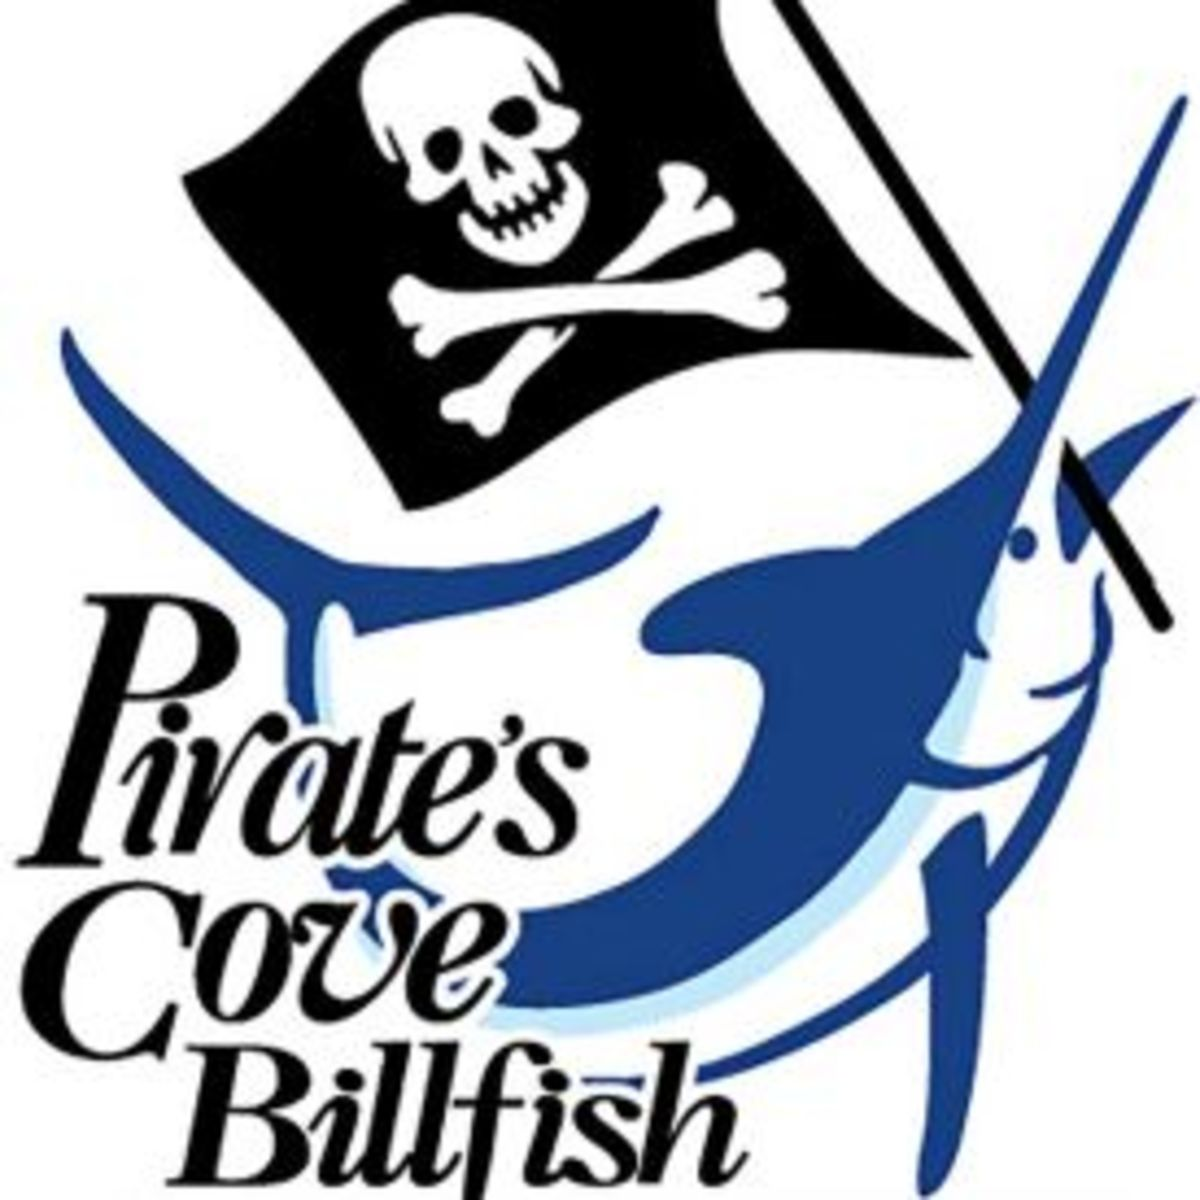 pirate-marlin-logo